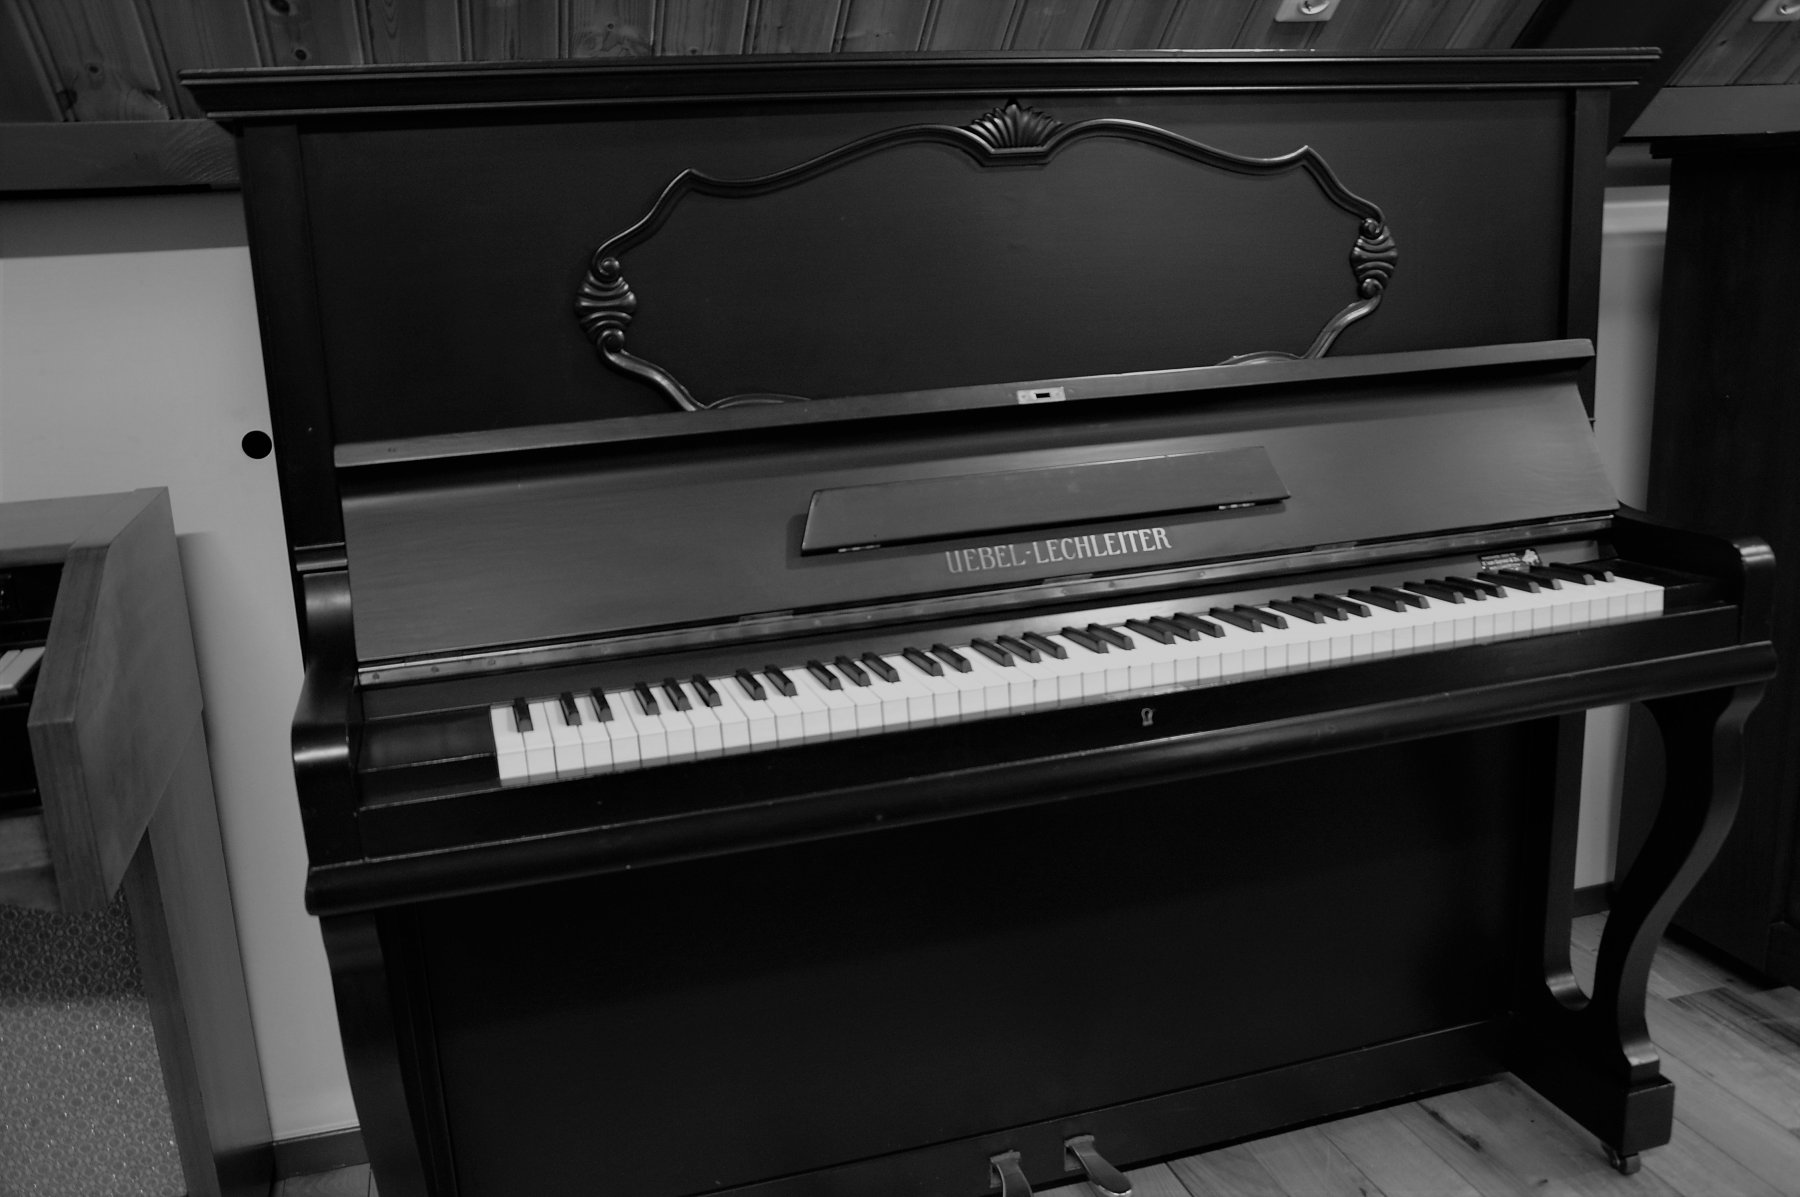 Uebel-Lechleiter piano